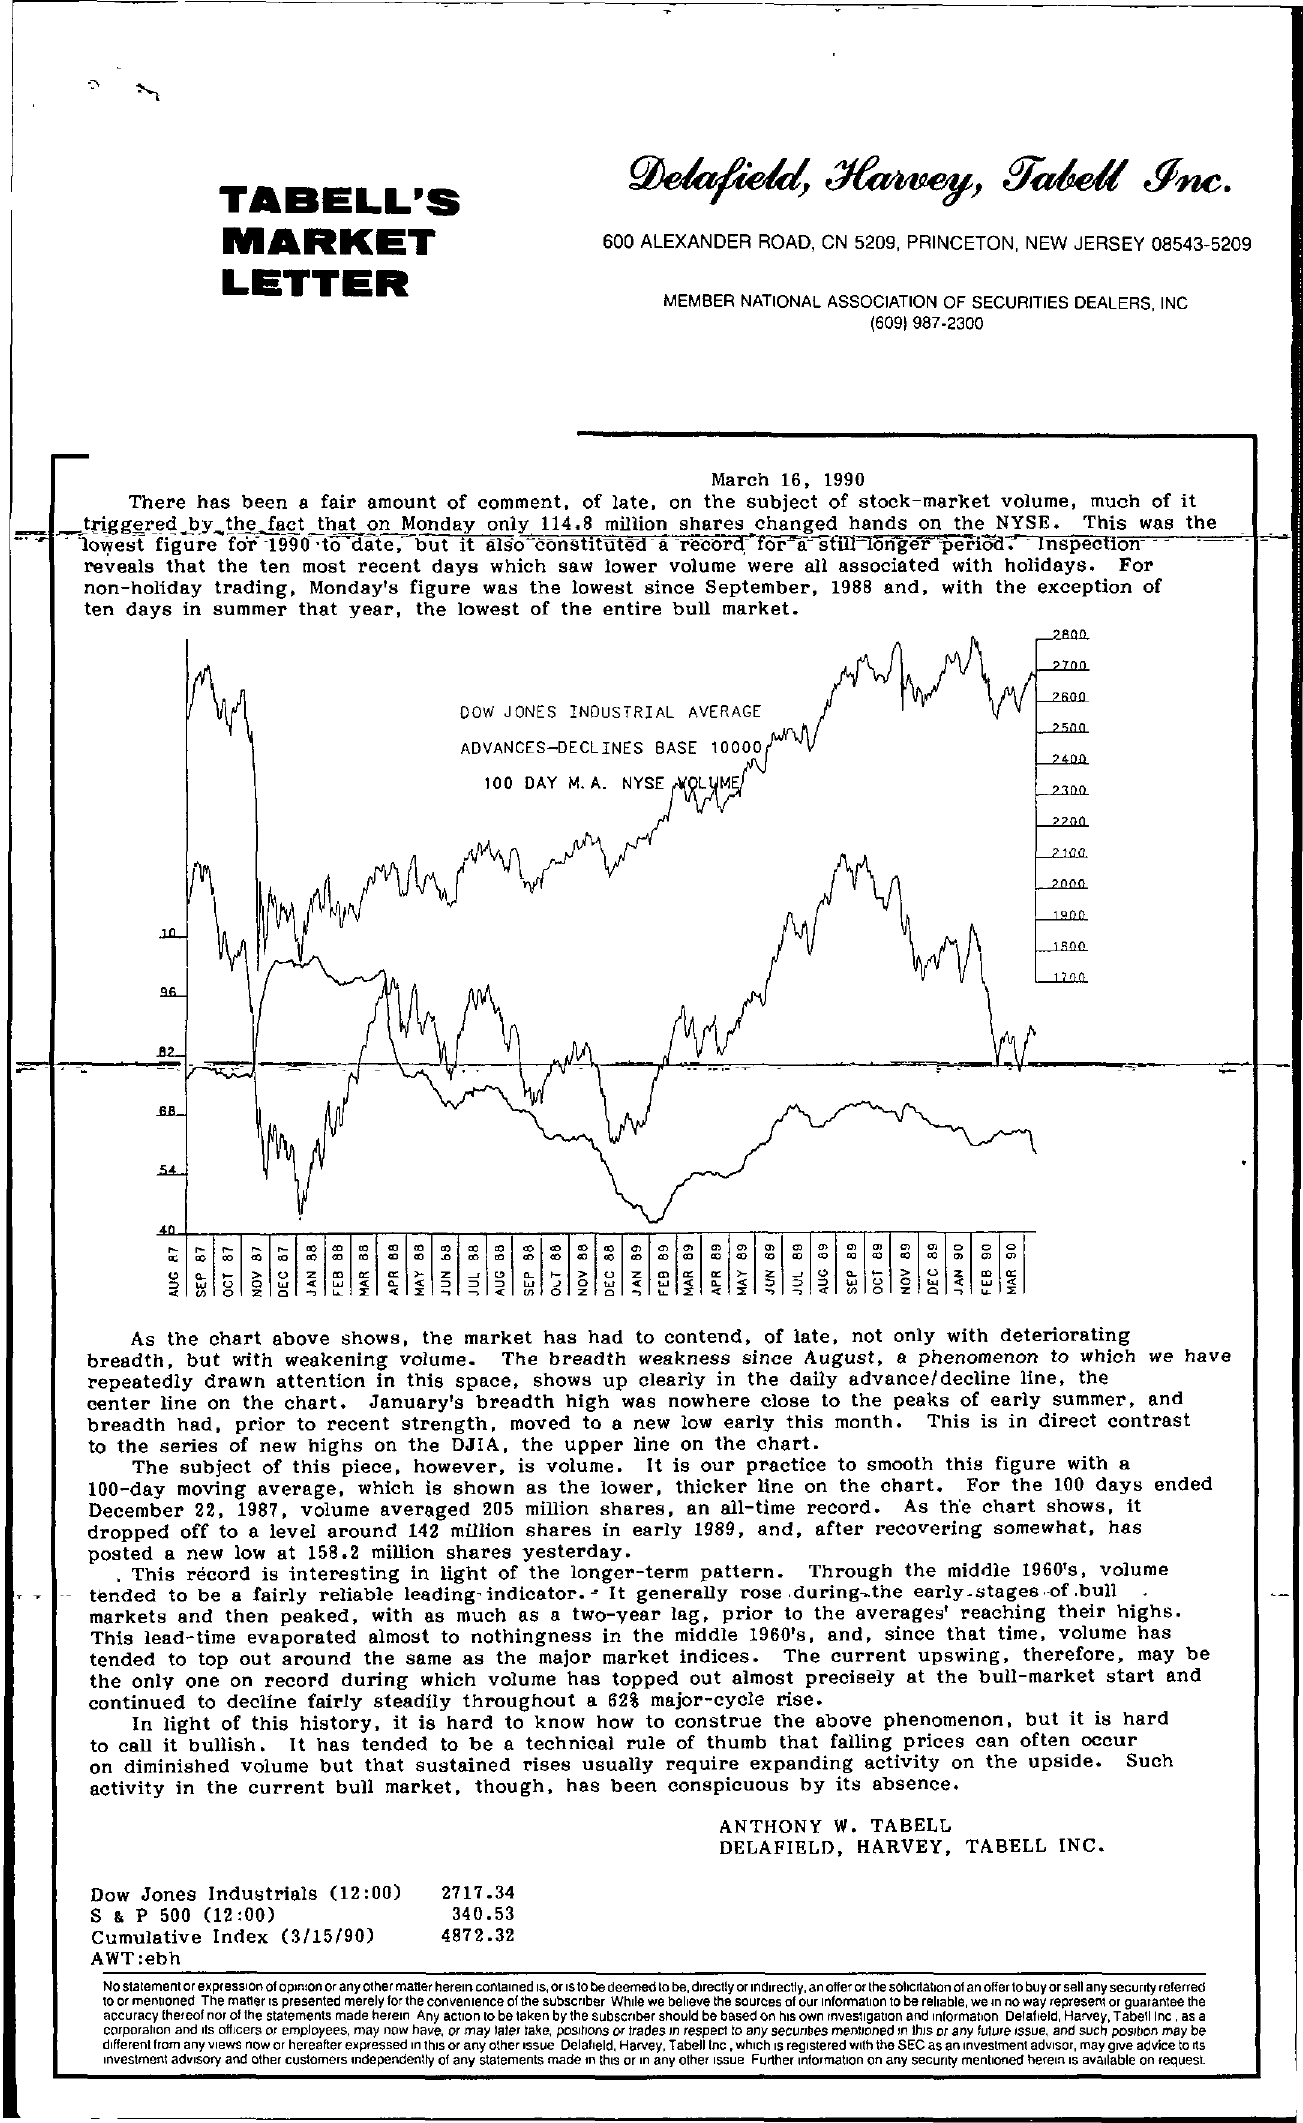 Tabell's Market Letter - March 16, 1990